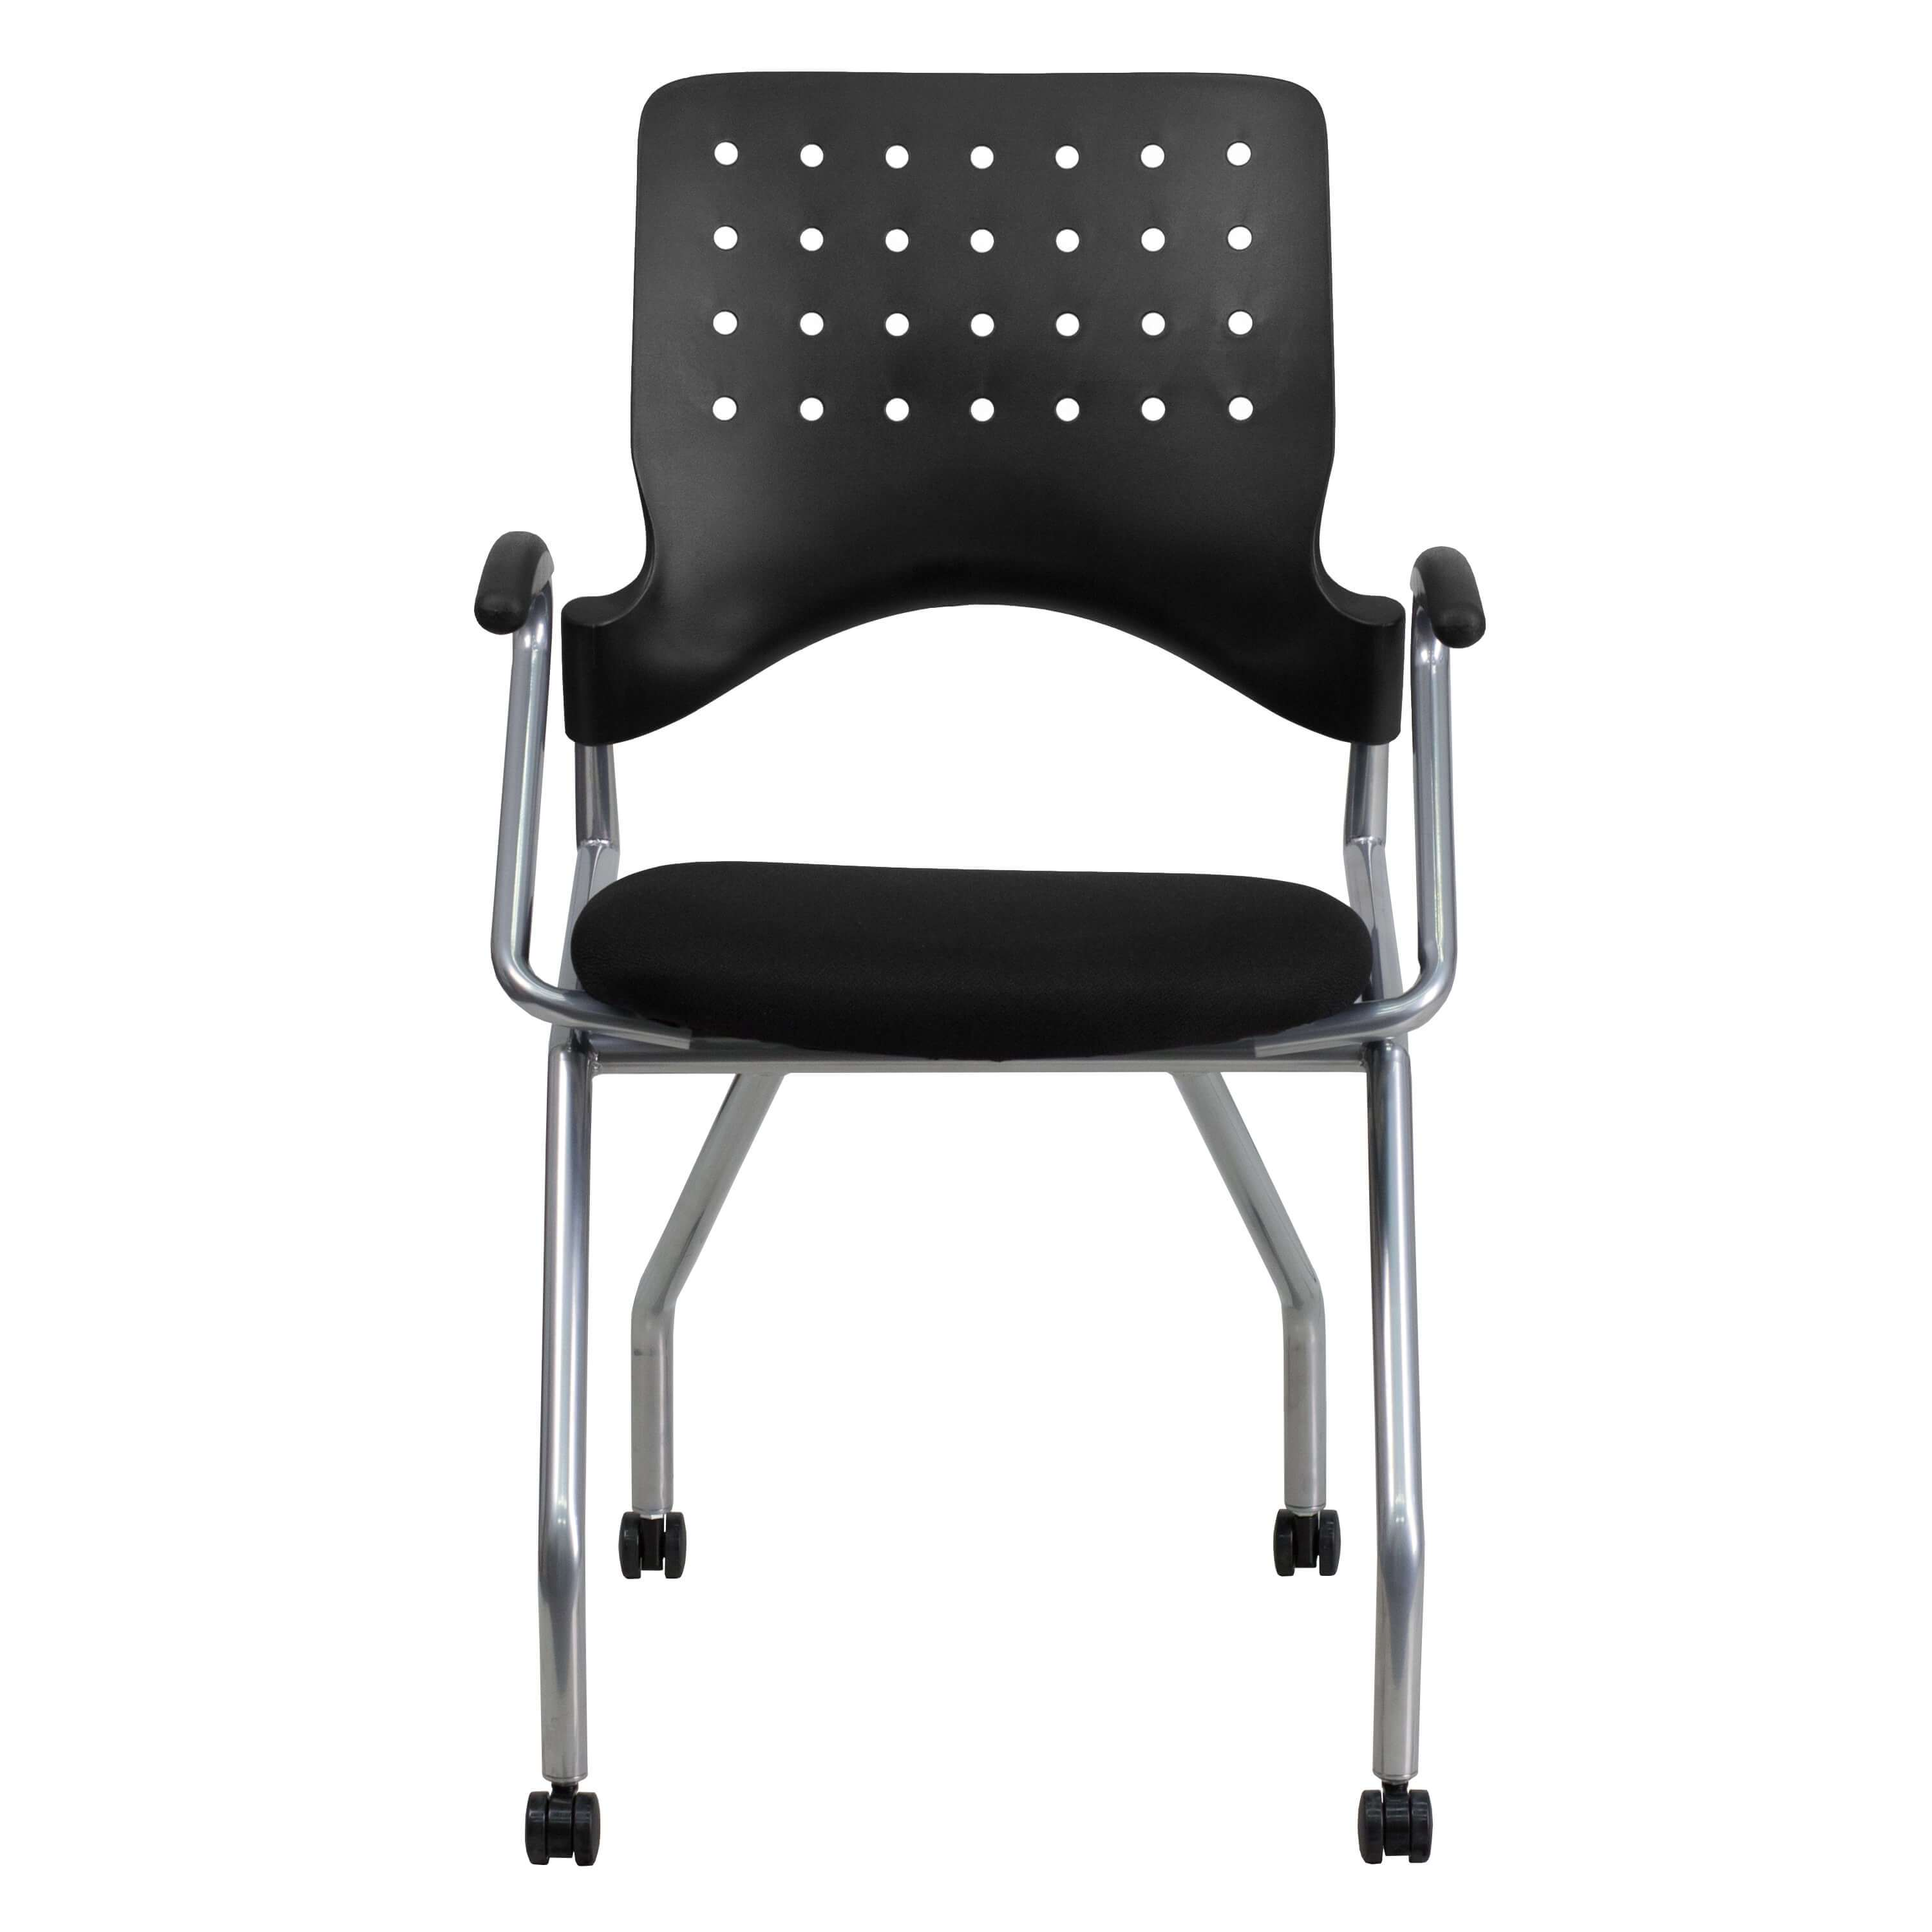 Plastic office chair front